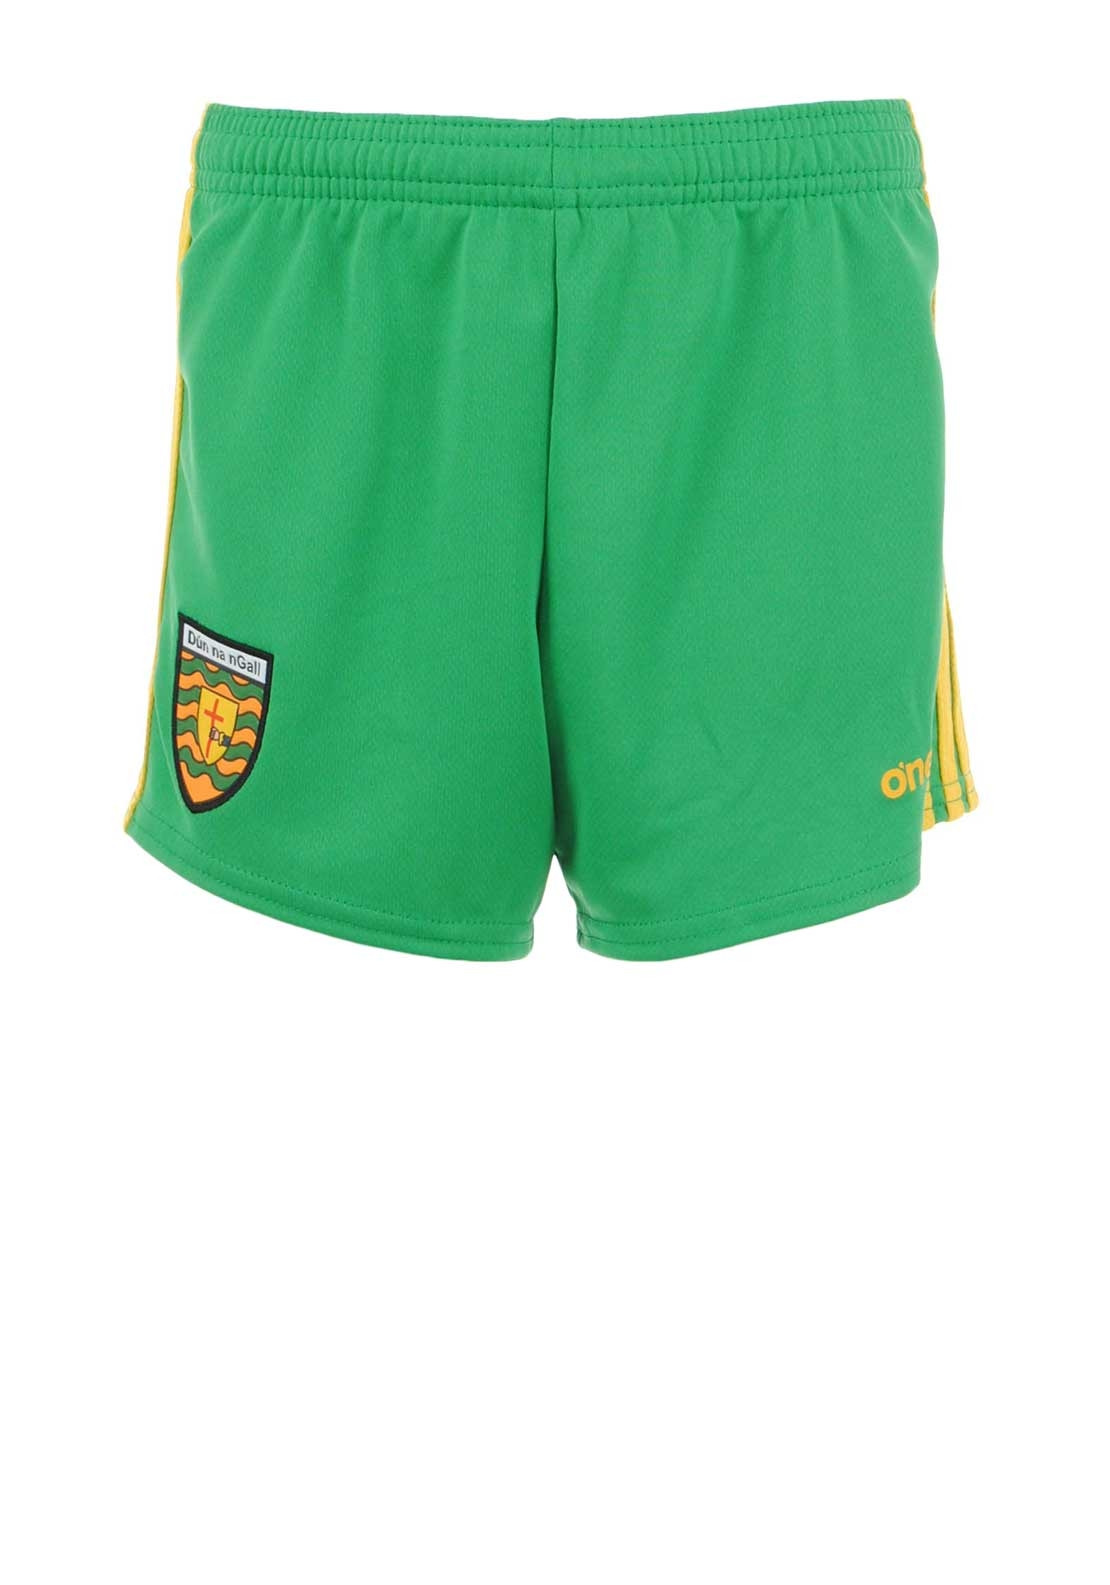 O'Neill's Donegal GAA Kids Shorts, Green